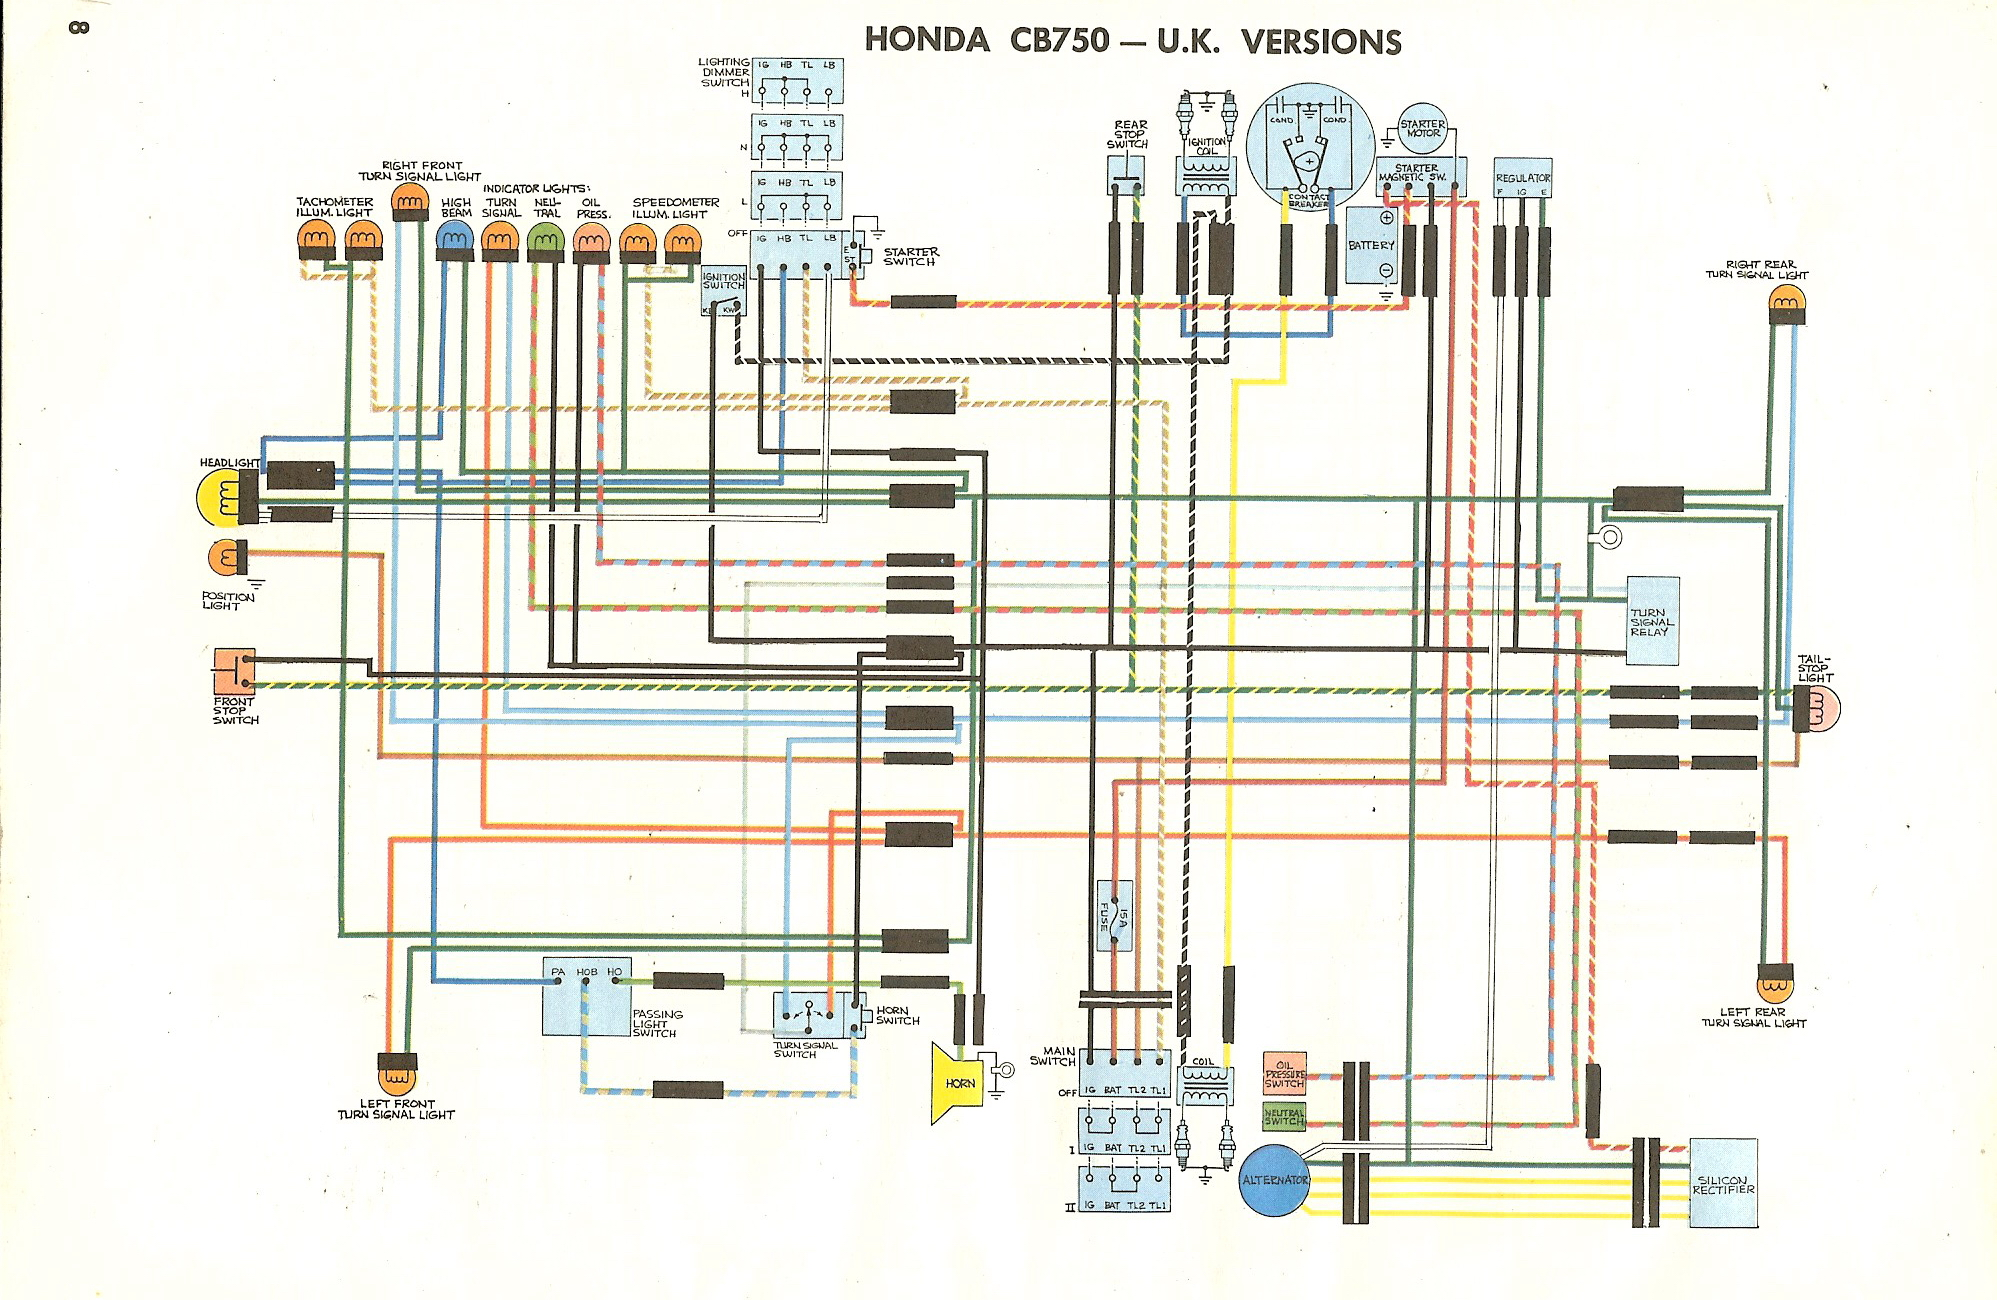 1980 Cb750 Wiring Diagram Bookmark About Custom Chopper Wire Cb750k Schema Diagrams Rh 28 Pur Tribute De Honda